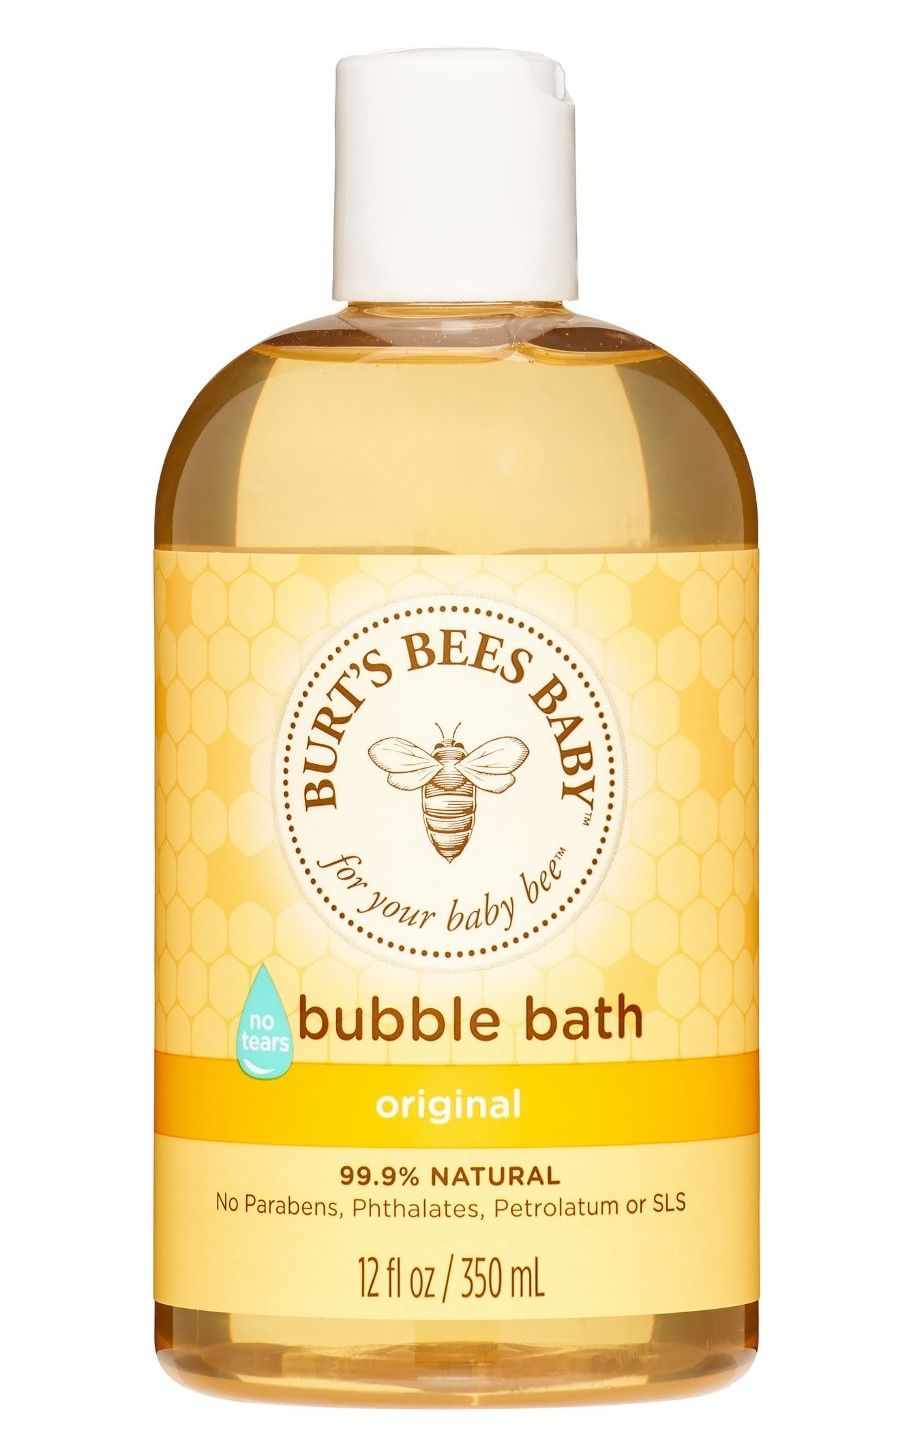 21 Best Bubble Bath Products - Luxury Products for a Relaxing Bubble ...